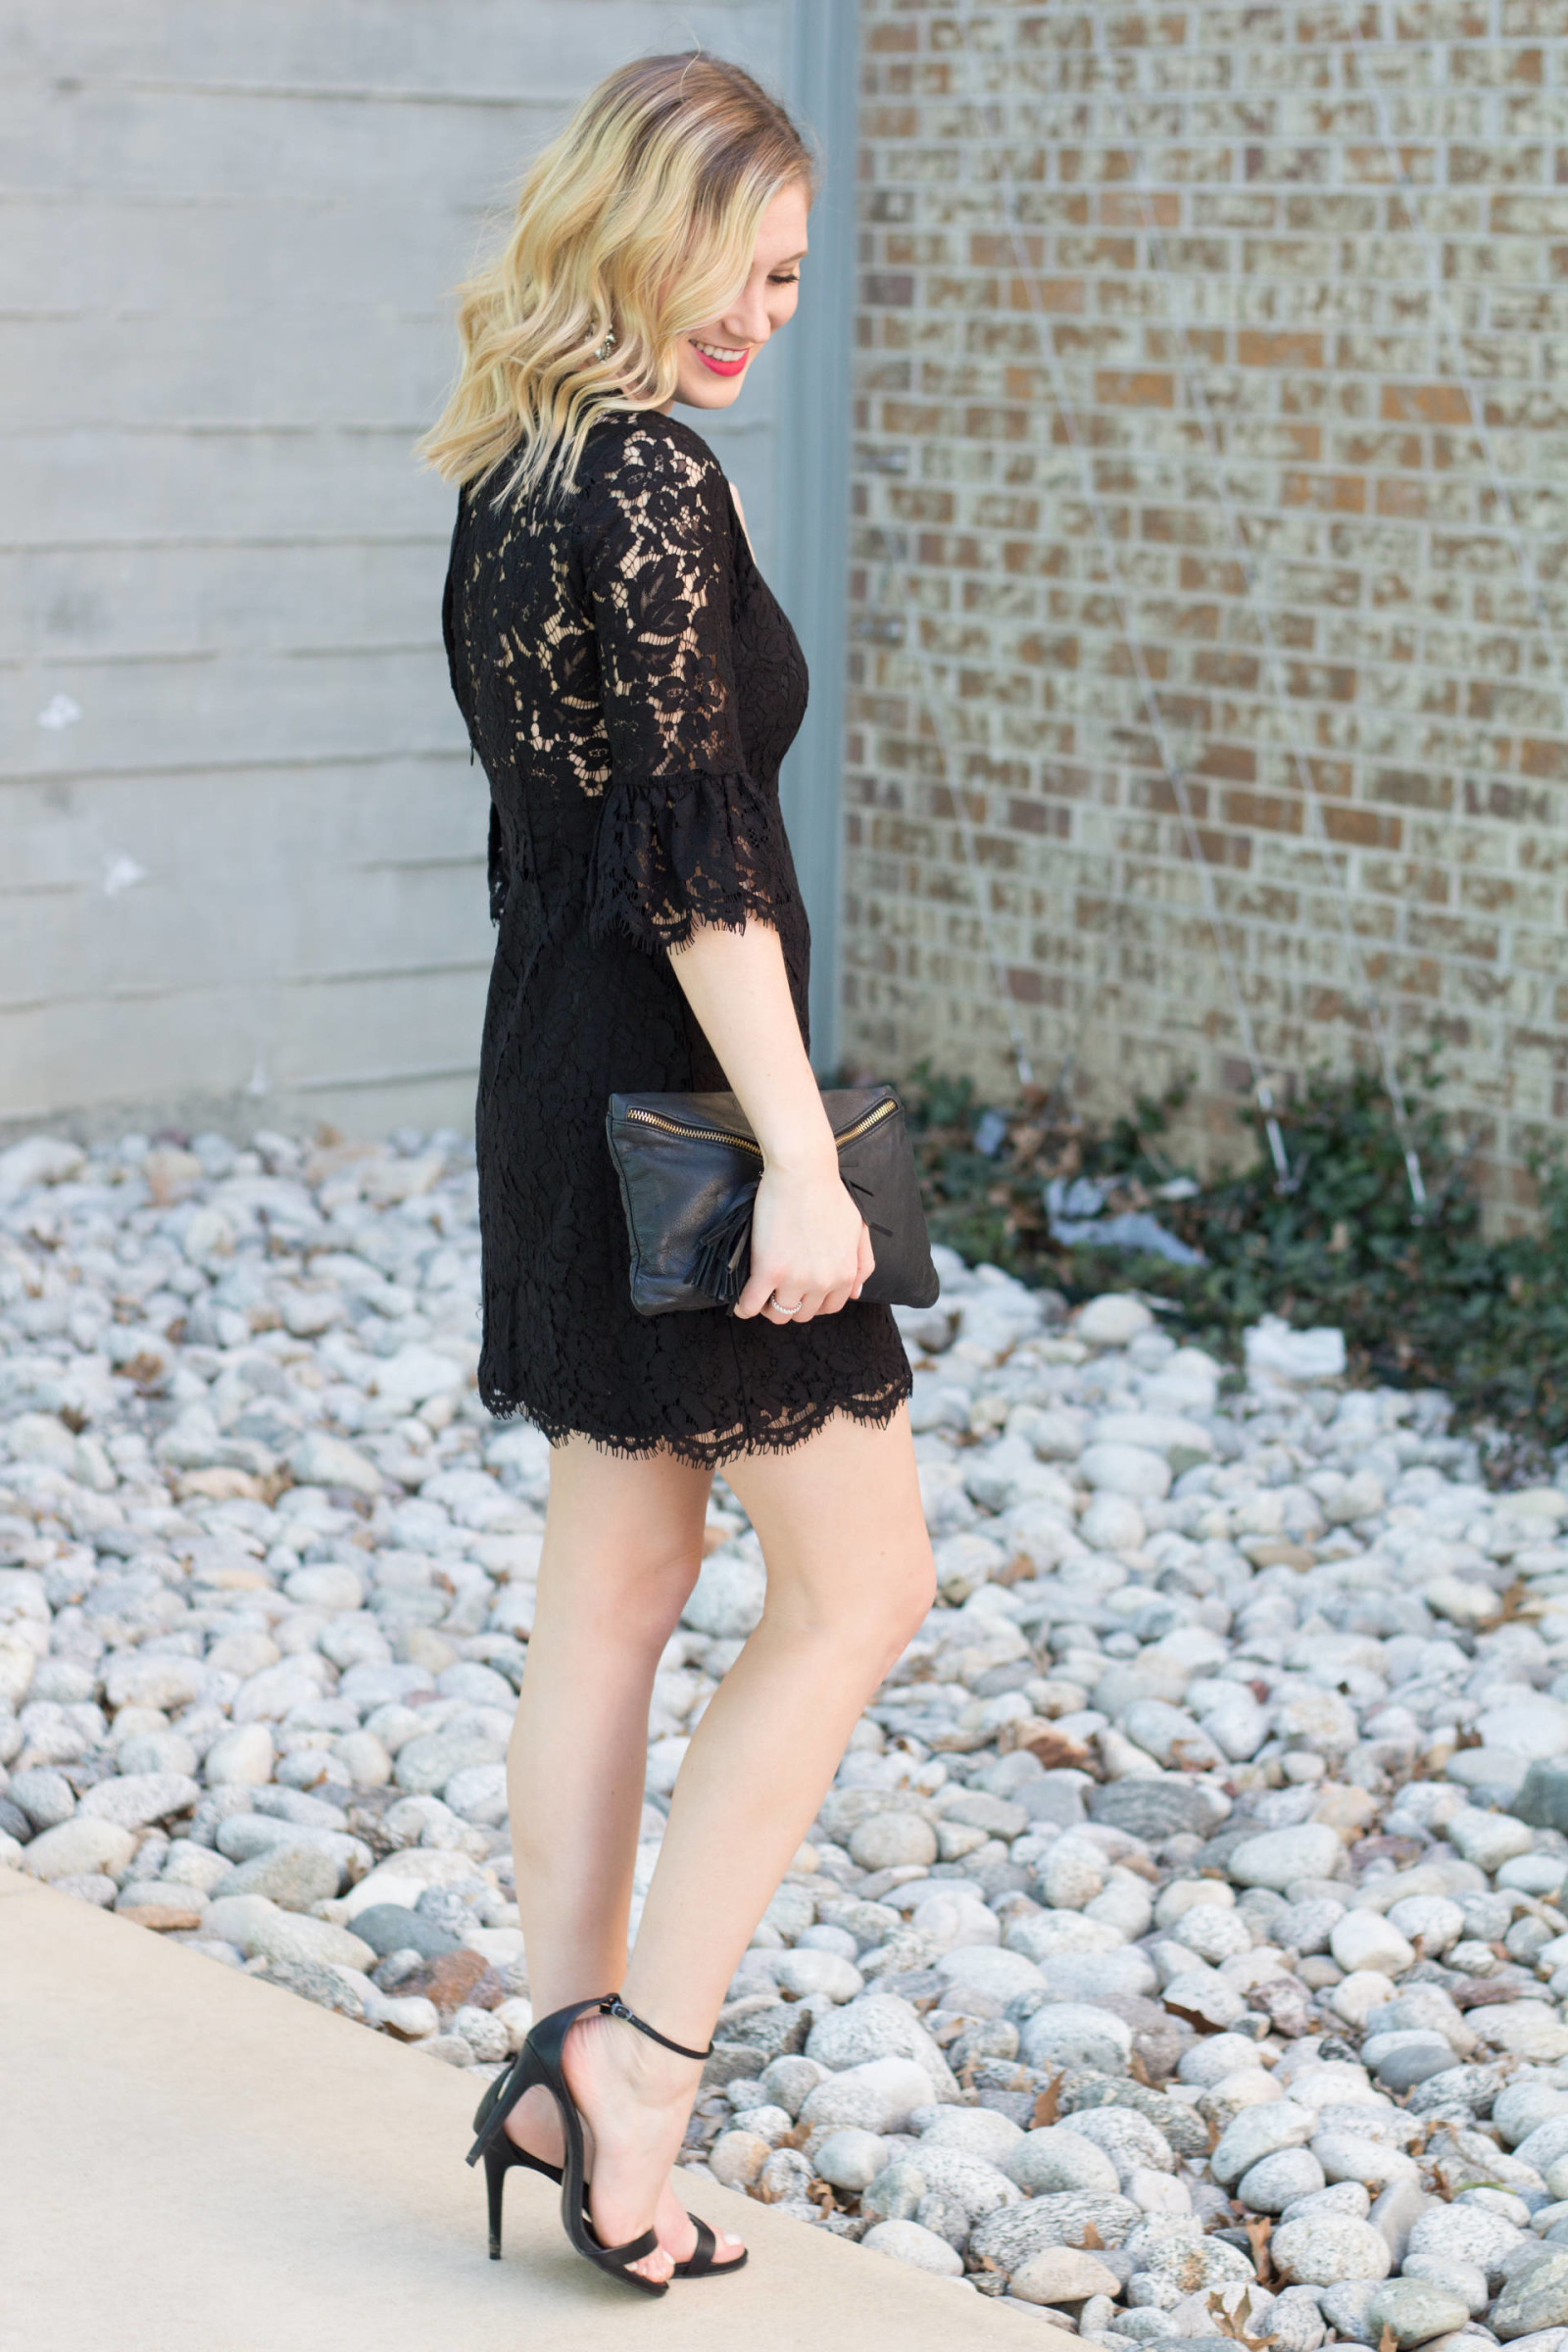 All-Over Lace | Gold-Hatted Lover